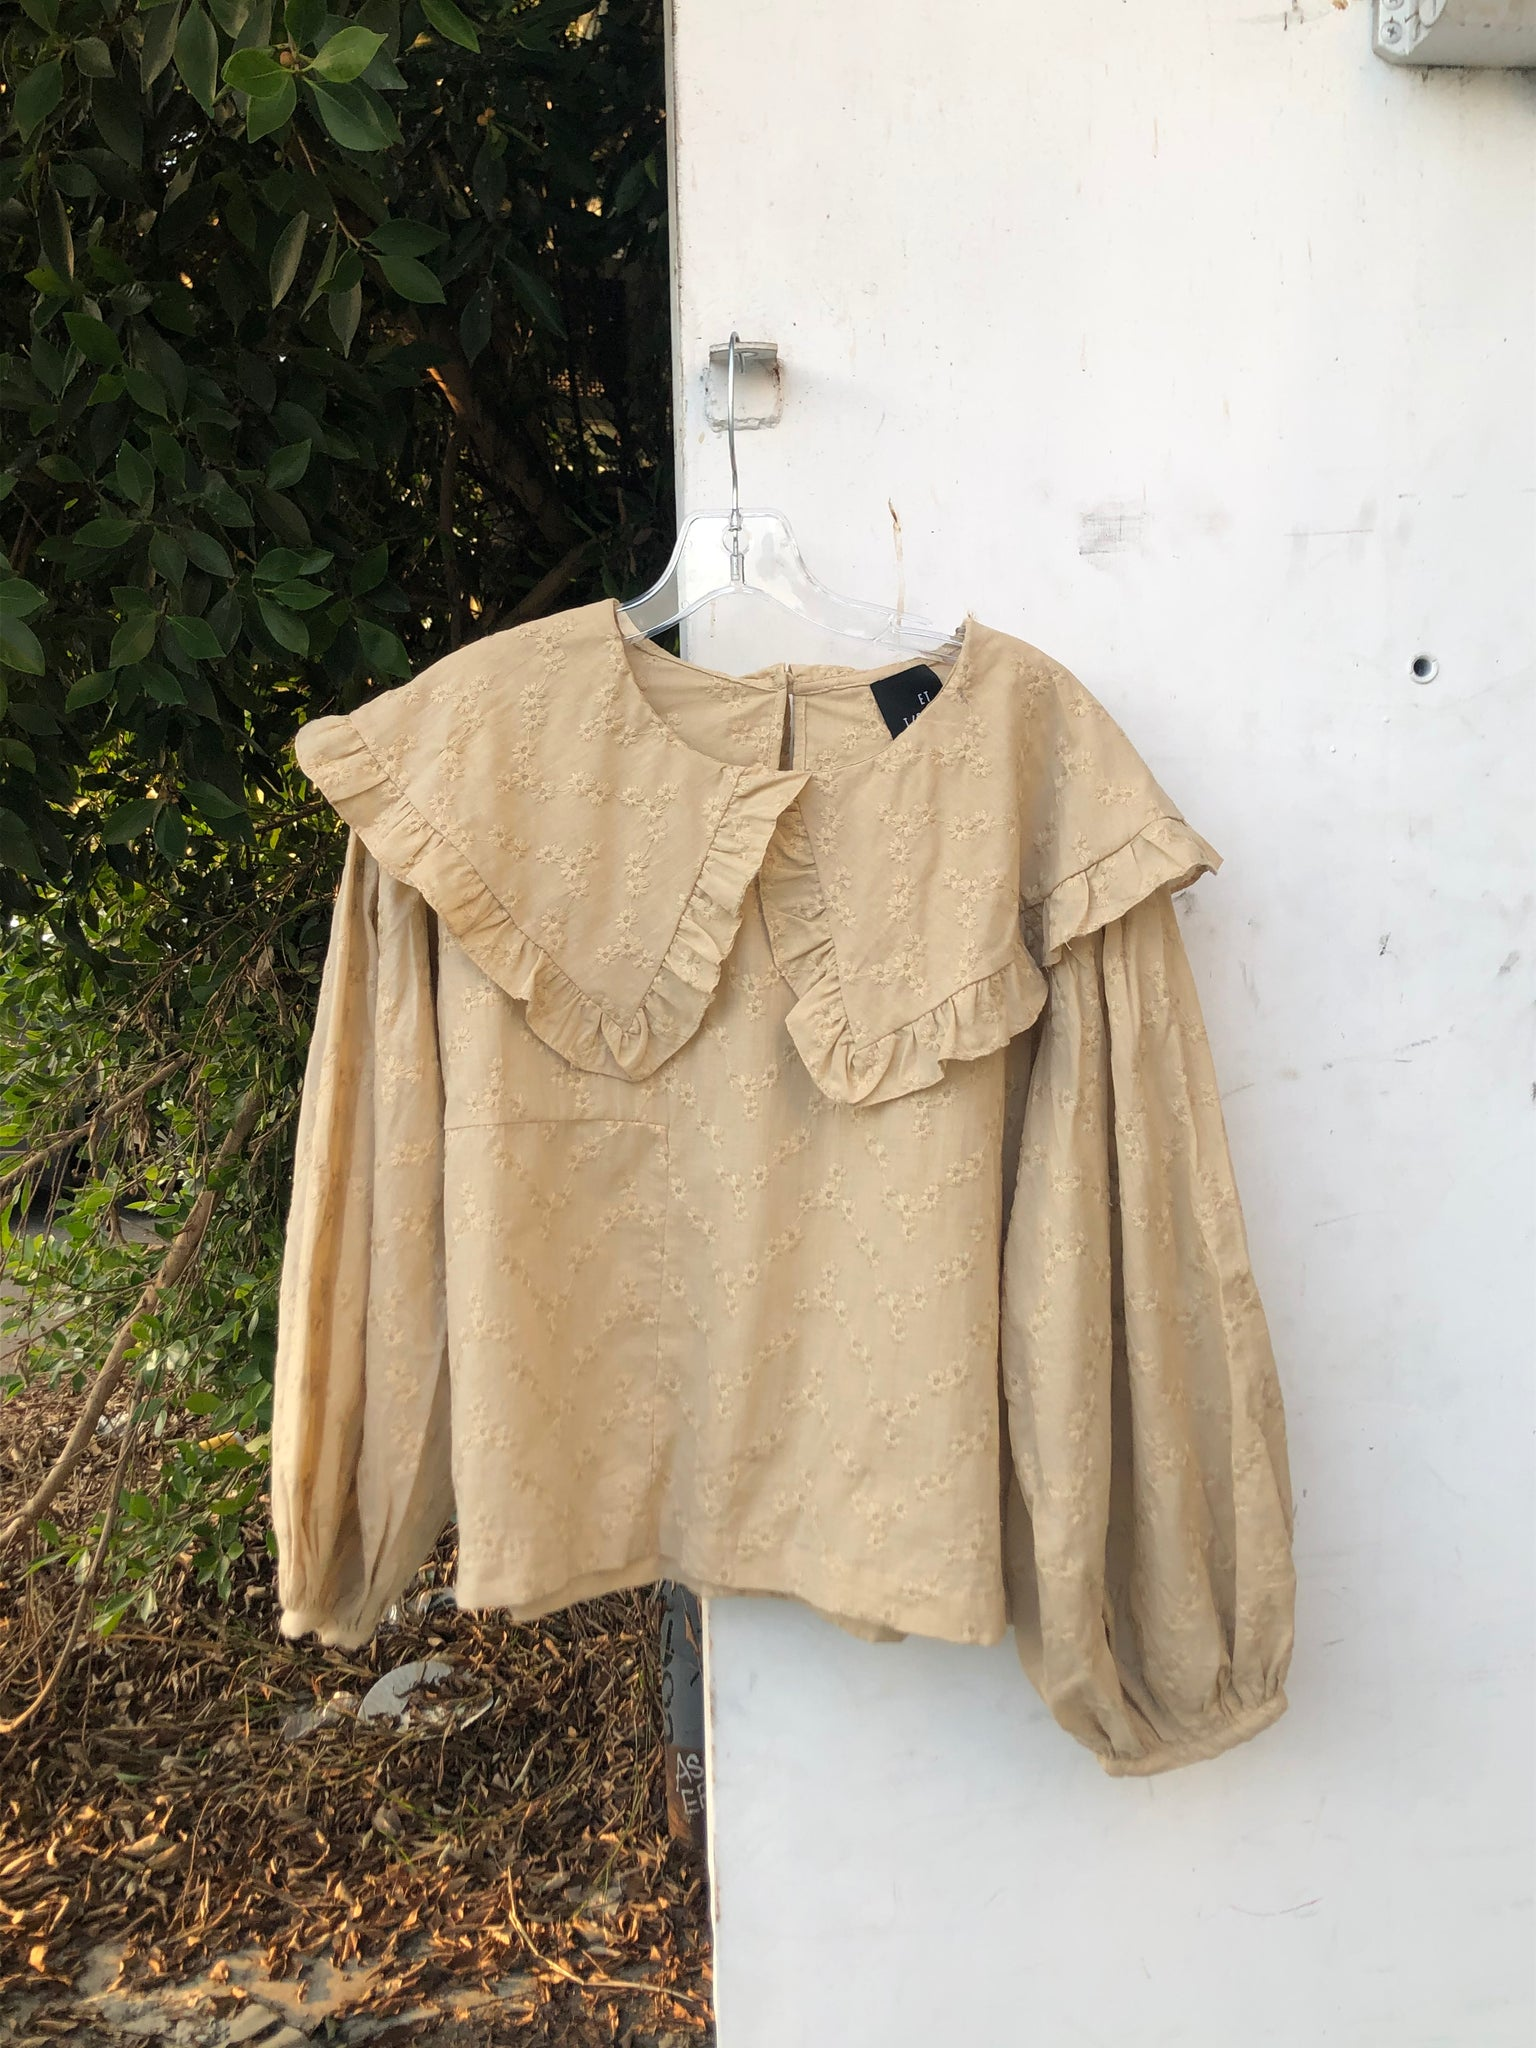 Faithe Top in Tan Eyelet